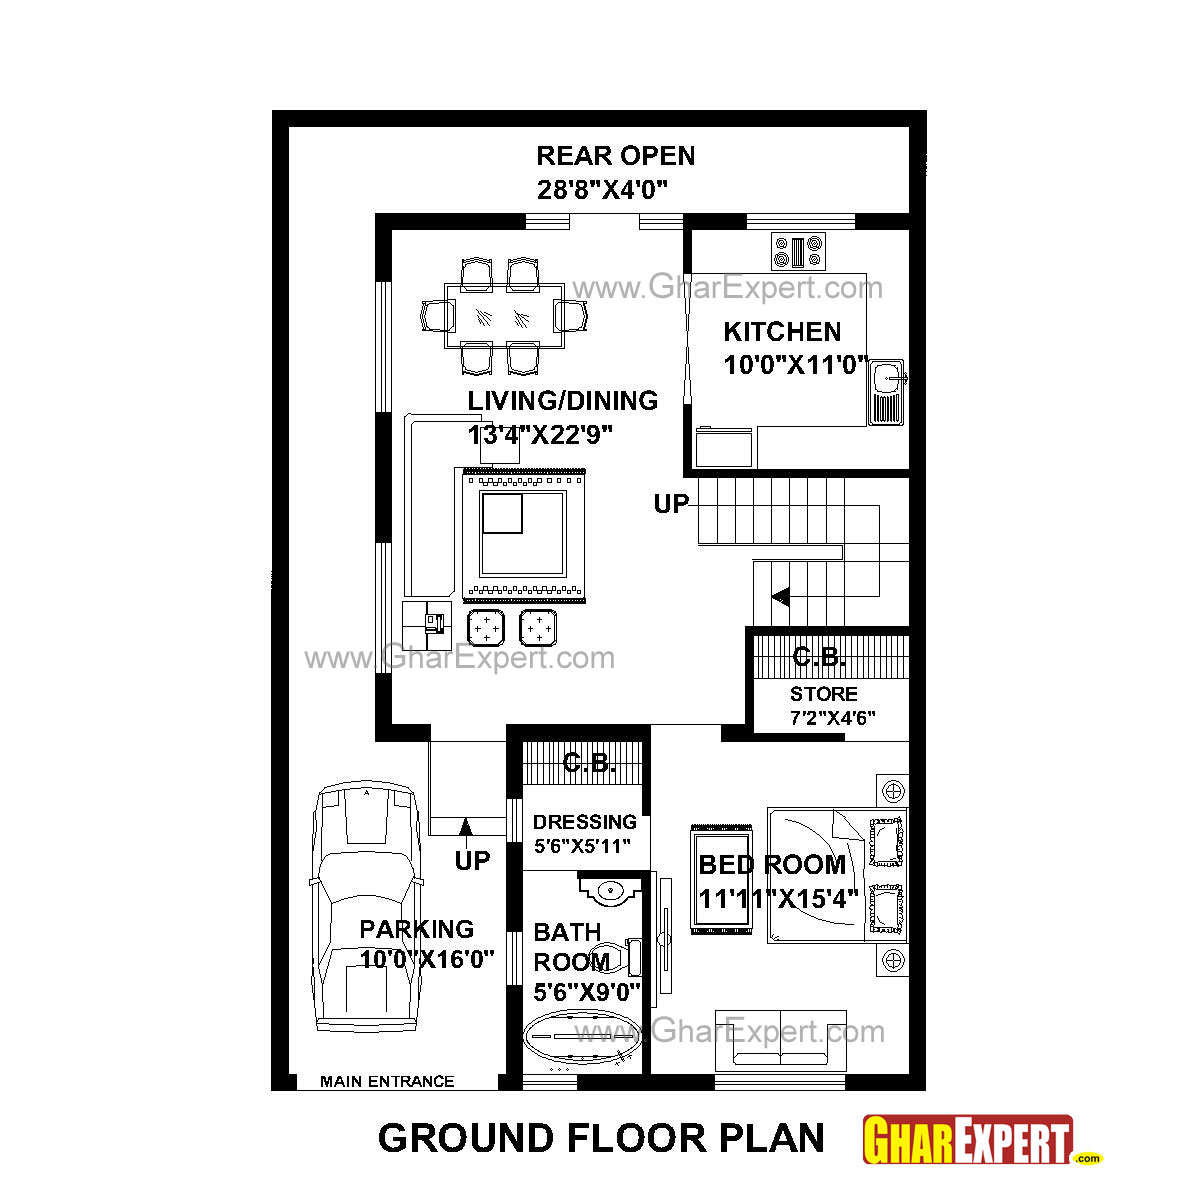 House Plan for 30 Feet by 45 Feet plot (Plot Size 150 Square Yards on 20x20 house plans, 40x40 house plans, 40x100 house plans, 24x36 house plans, 12x12 house plans, 20x40 house plans, 50x80 house plans, 20x30 house plans, 10x15 house plans, 25x50 house plans, 24x32 house plans, 36x36 house plans, 10x20 house plans, 30x35 house plans, 30x60 house plans, 10x30 house plans, 25x35 house plans, 40x80 house plans, 50x70 house plans, 30x40 house plans,